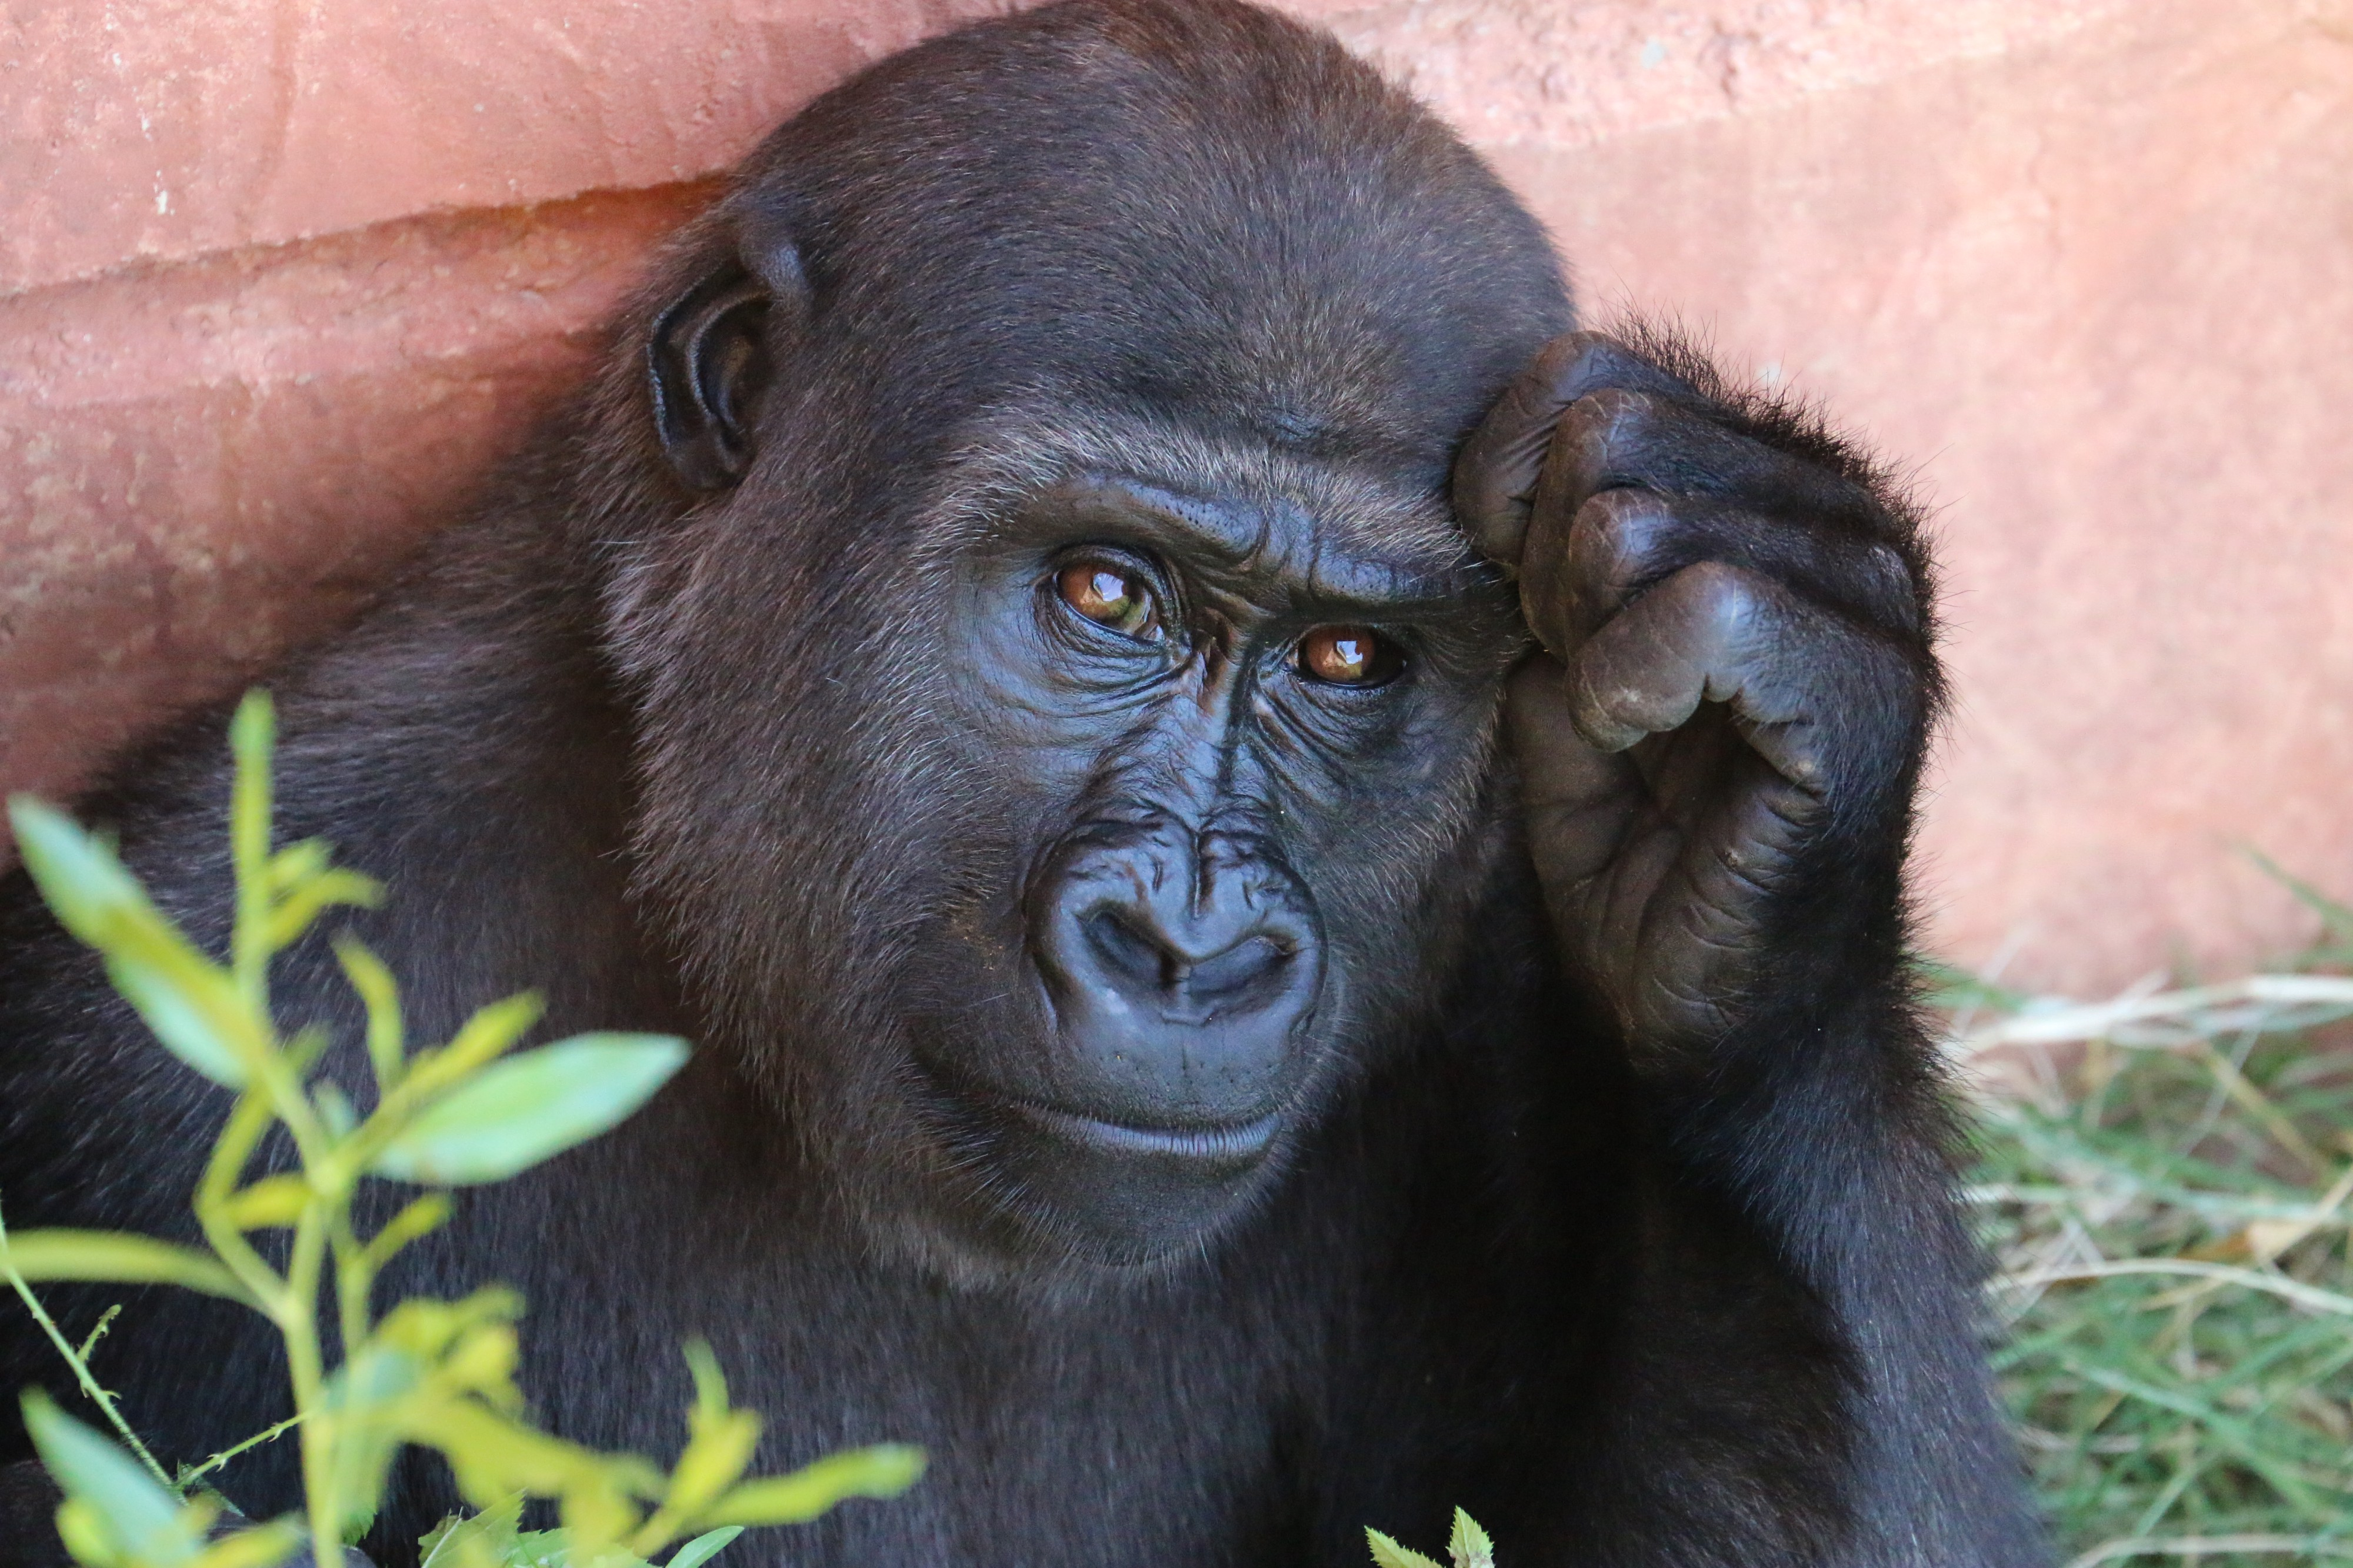 Gorilla thinking about a problem